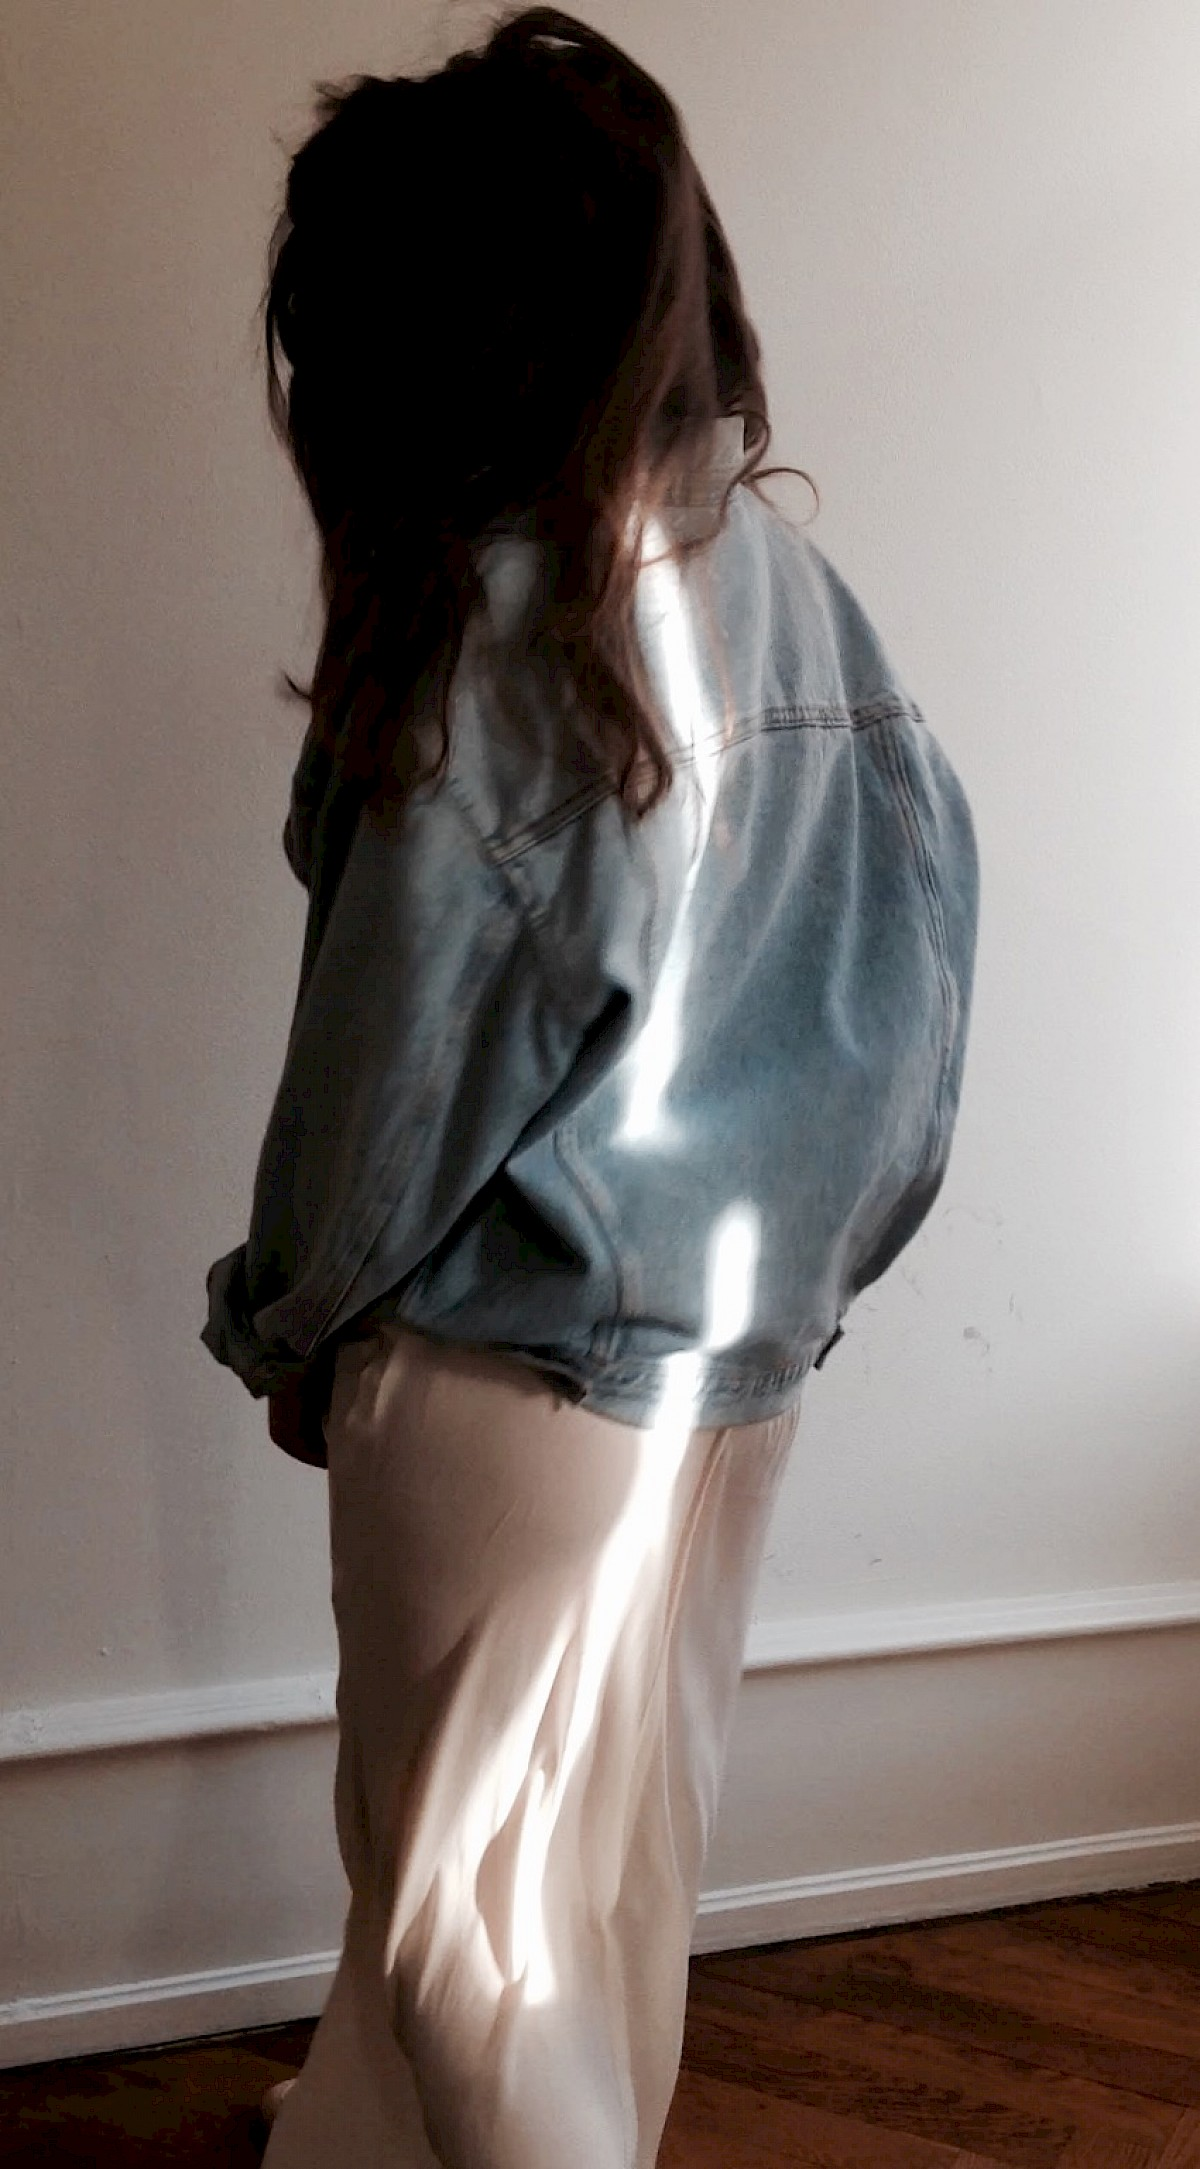 Sashi: T Alexander Wang silk maxi dress, vintage Hugo Boss denim Jeans jacket oversized